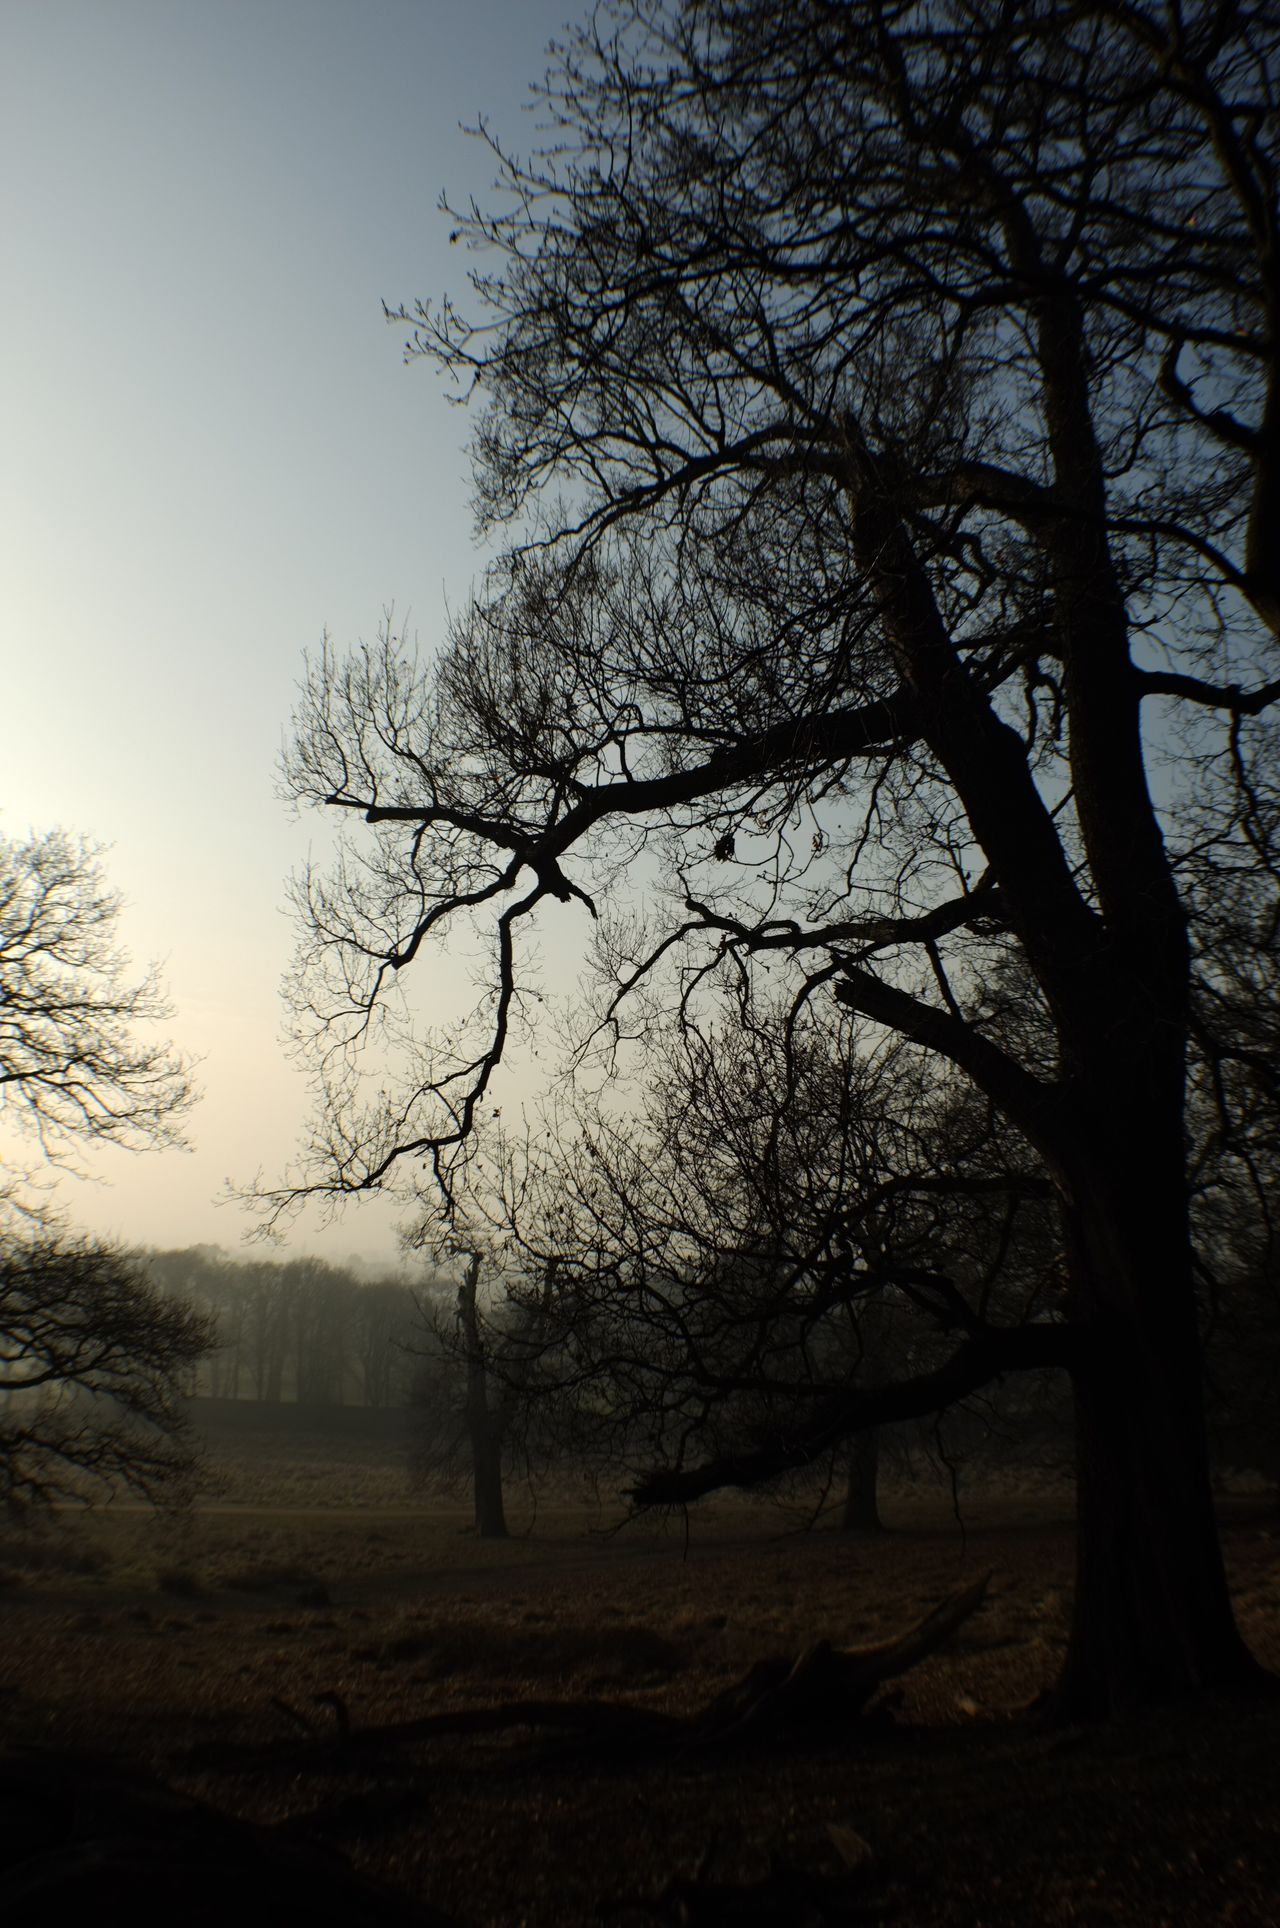 Tree Nature Silhouette Bare Tree Tranquility Branch Tranquil Scene No People Sky Landscape Beauty In Nature Outdoors Day London Winter